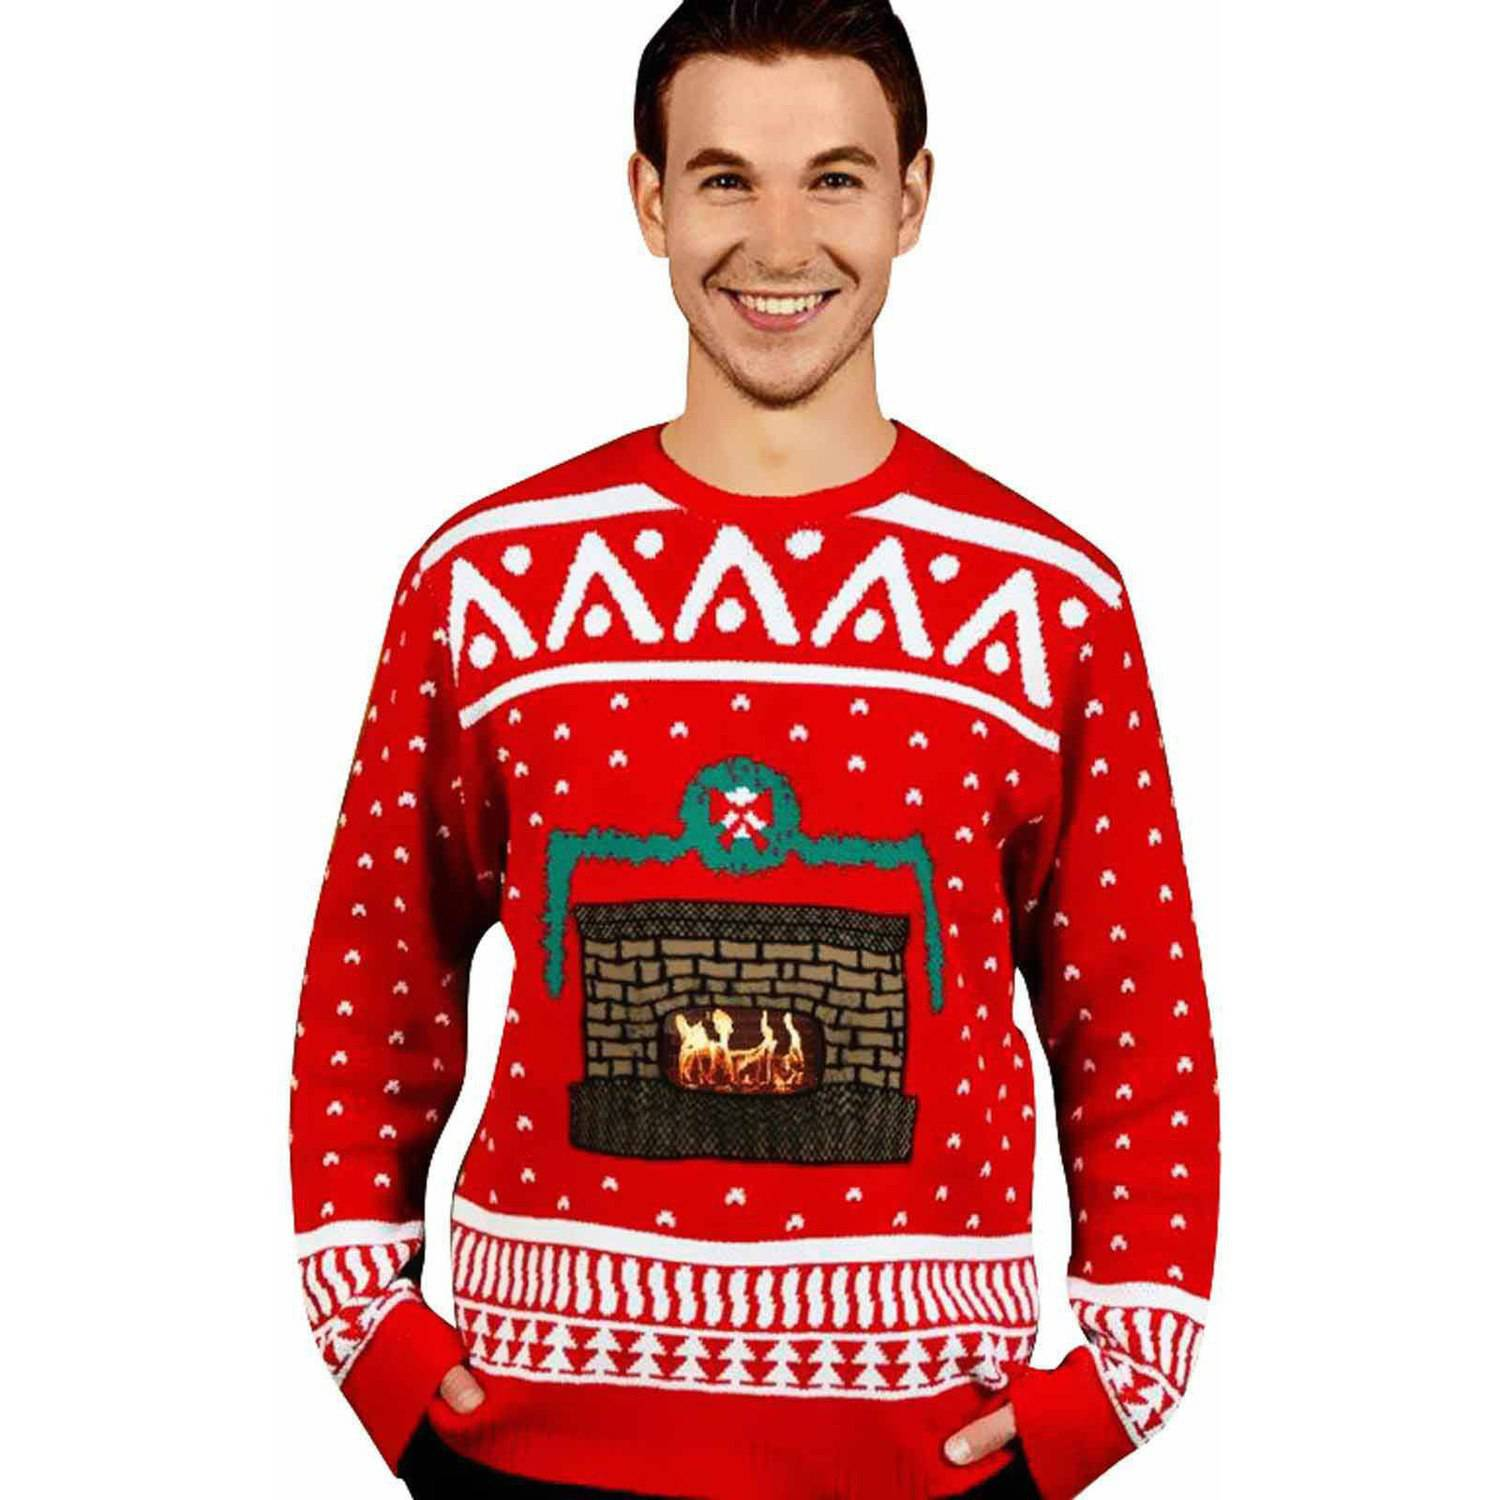 Knit Crackling Fireplace Ugly Christmas Sweater Men's Adult ...